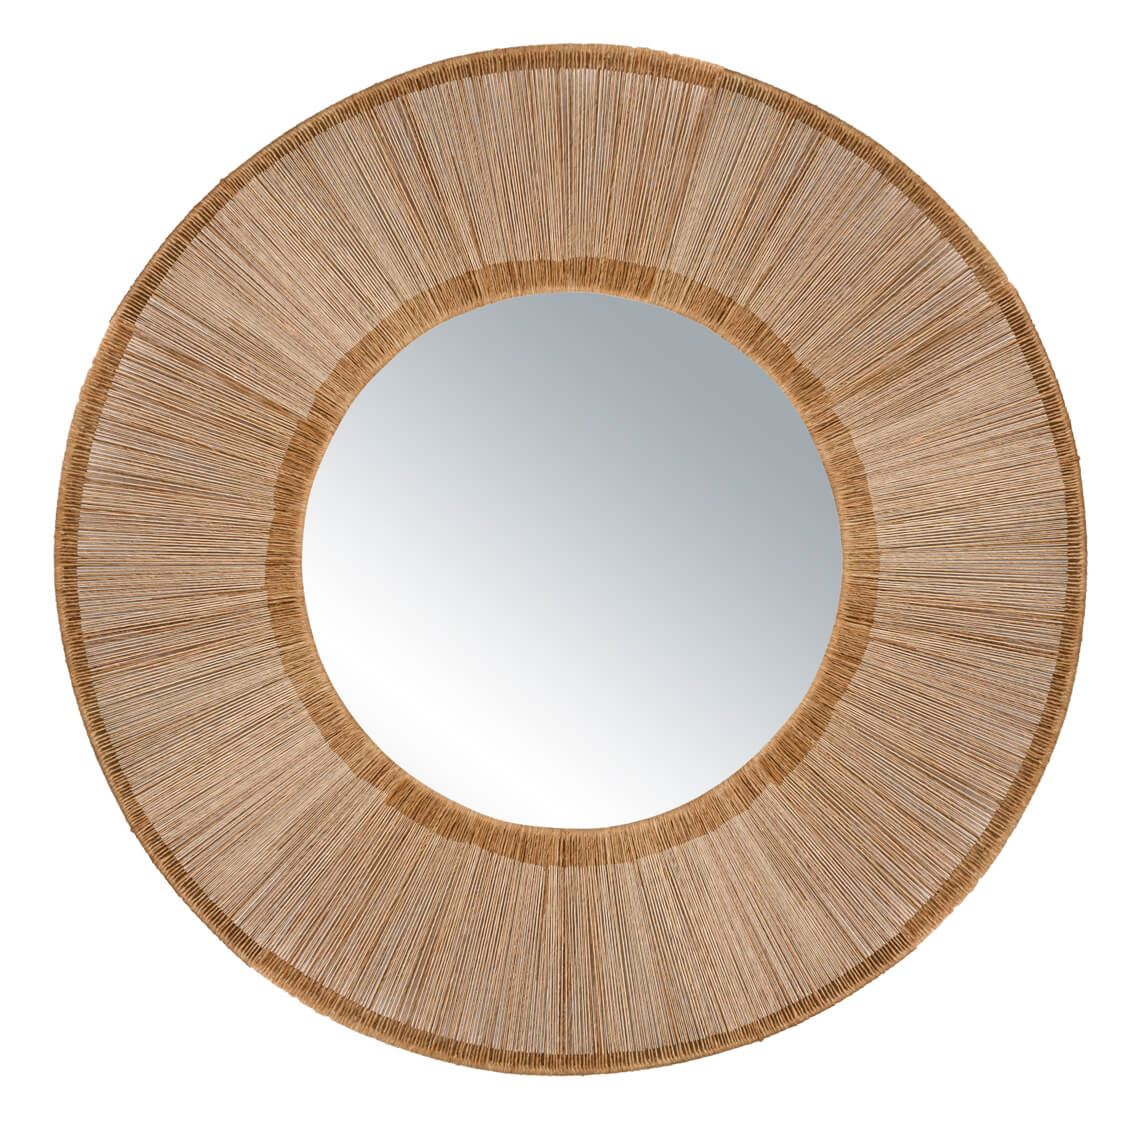 Keighley Round Mirror Size W 93cm x D 4cm x H 93cm in Natural Iron/Jute/Mirrored Glass Freedom by Freedom, a Mirrors for sale on Style Sourcebook